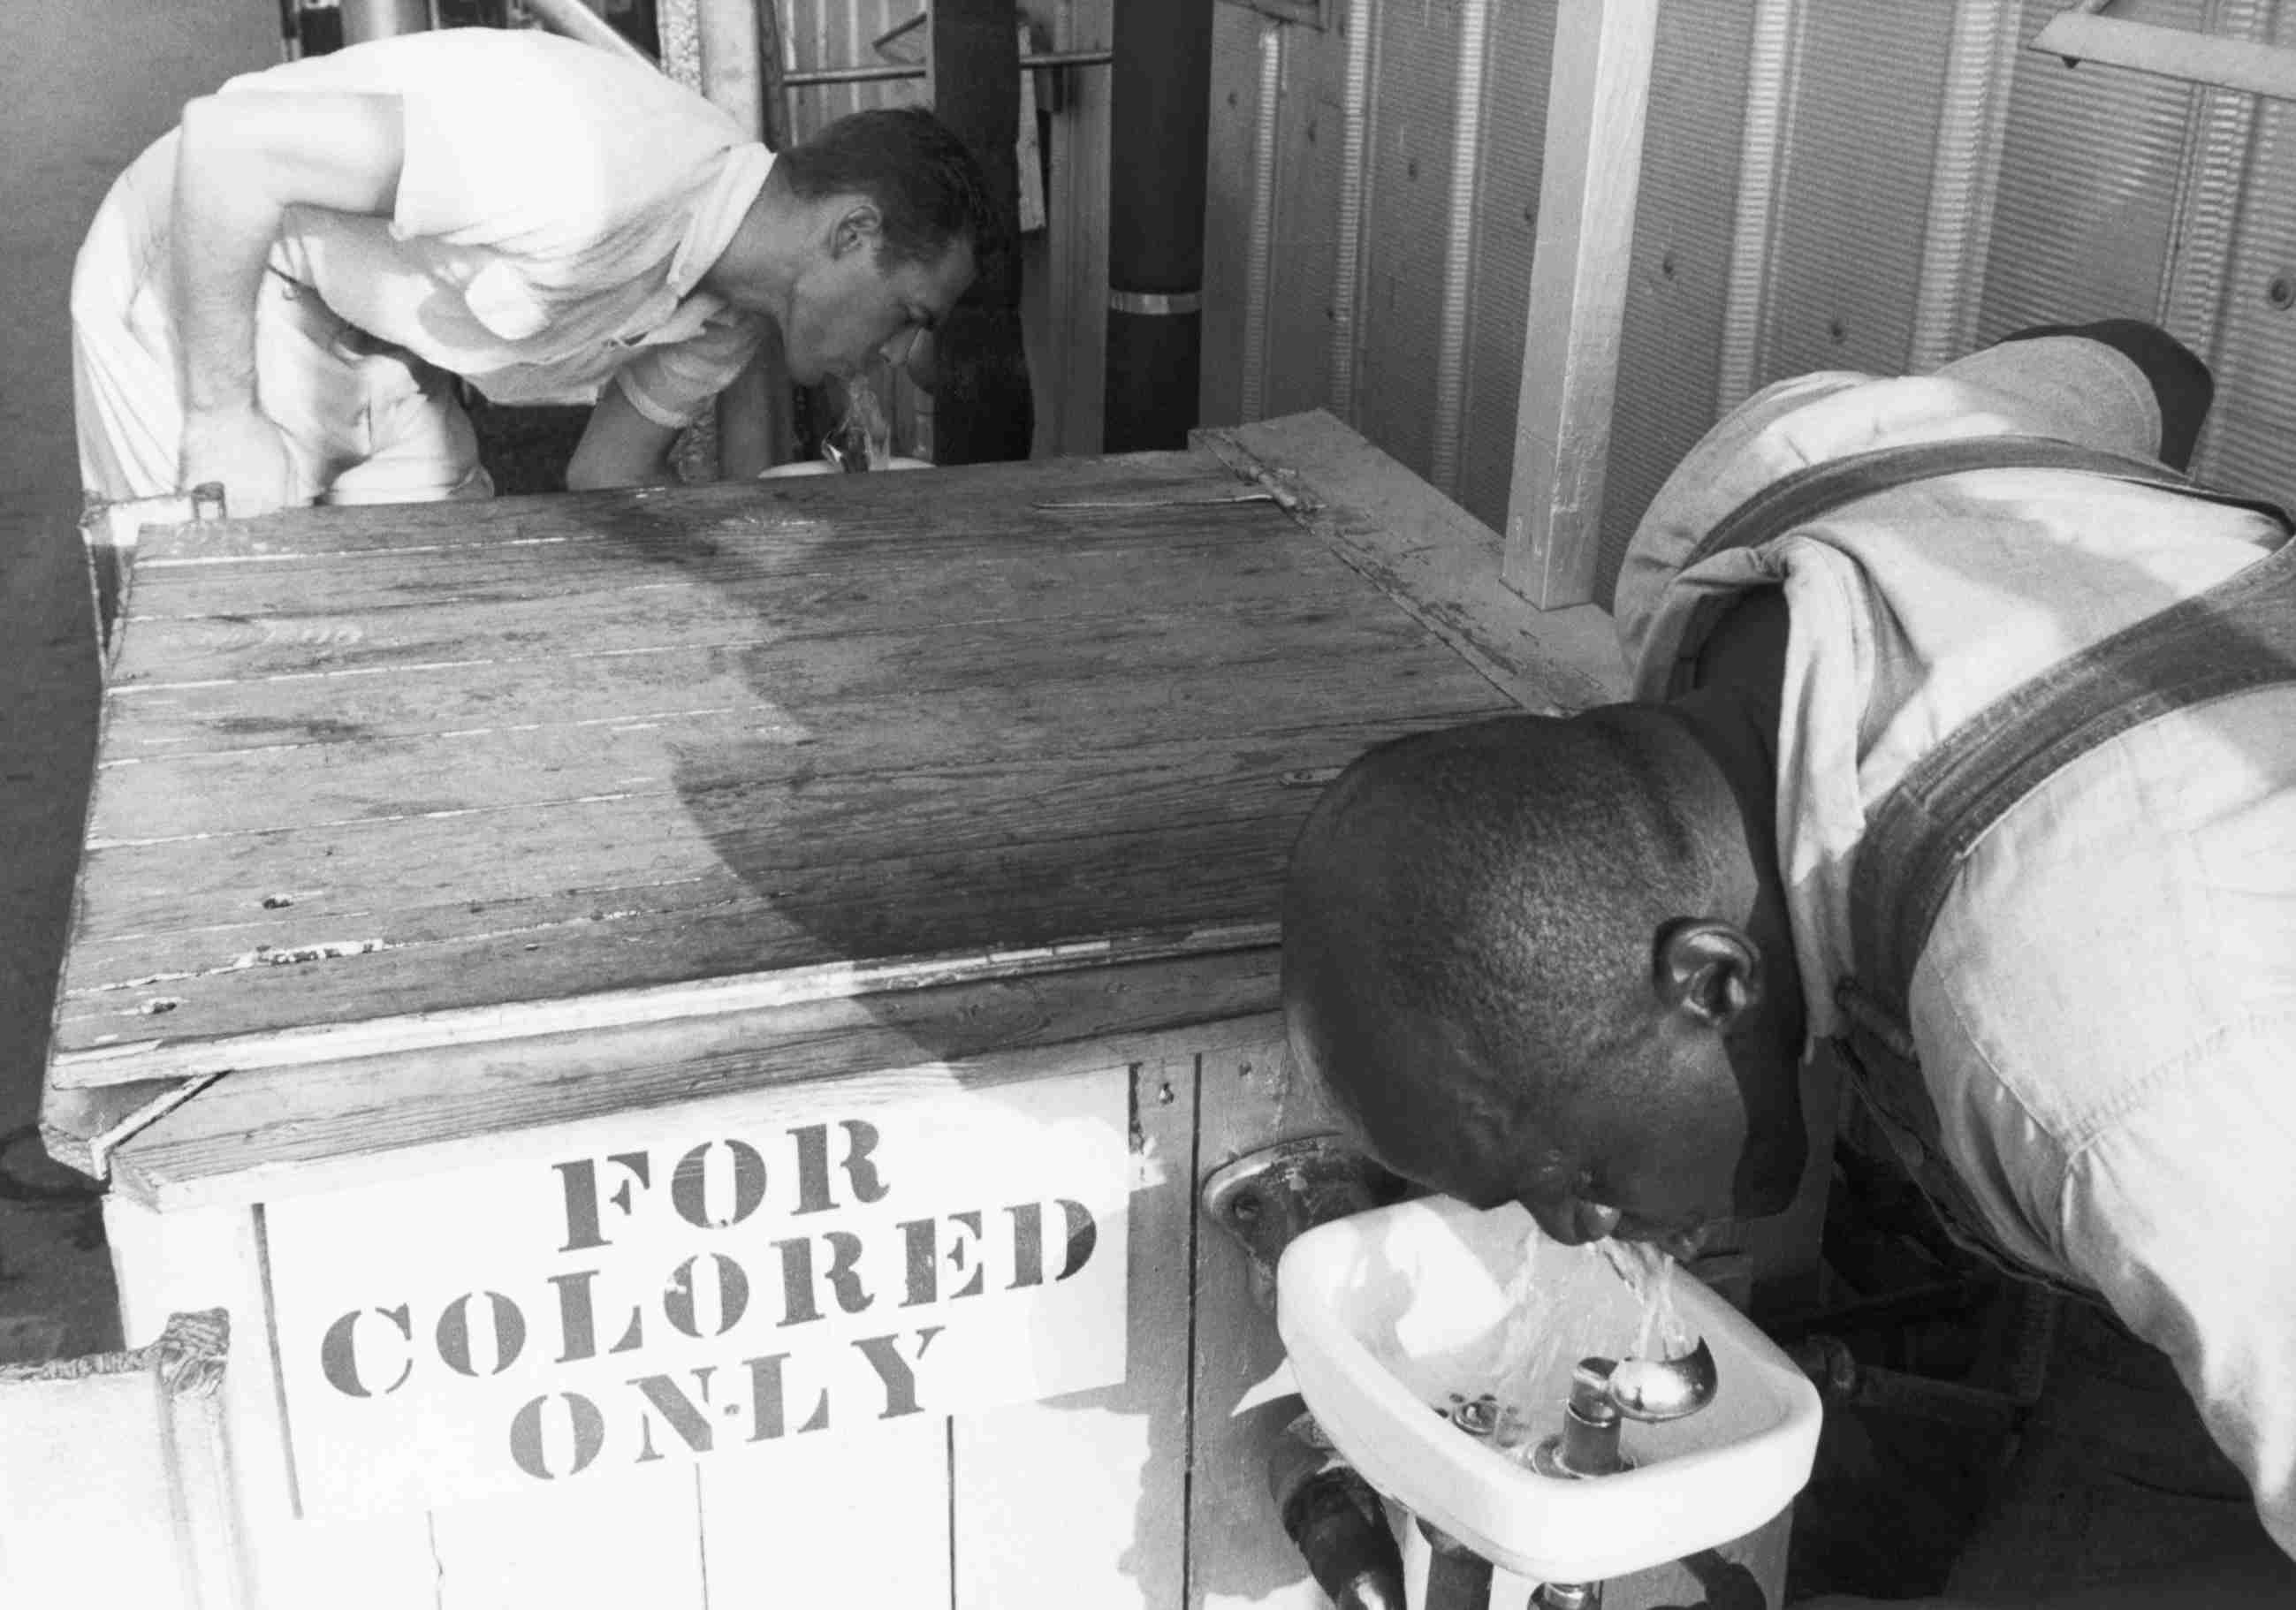 Men Drinking from Segregated Water Fountains